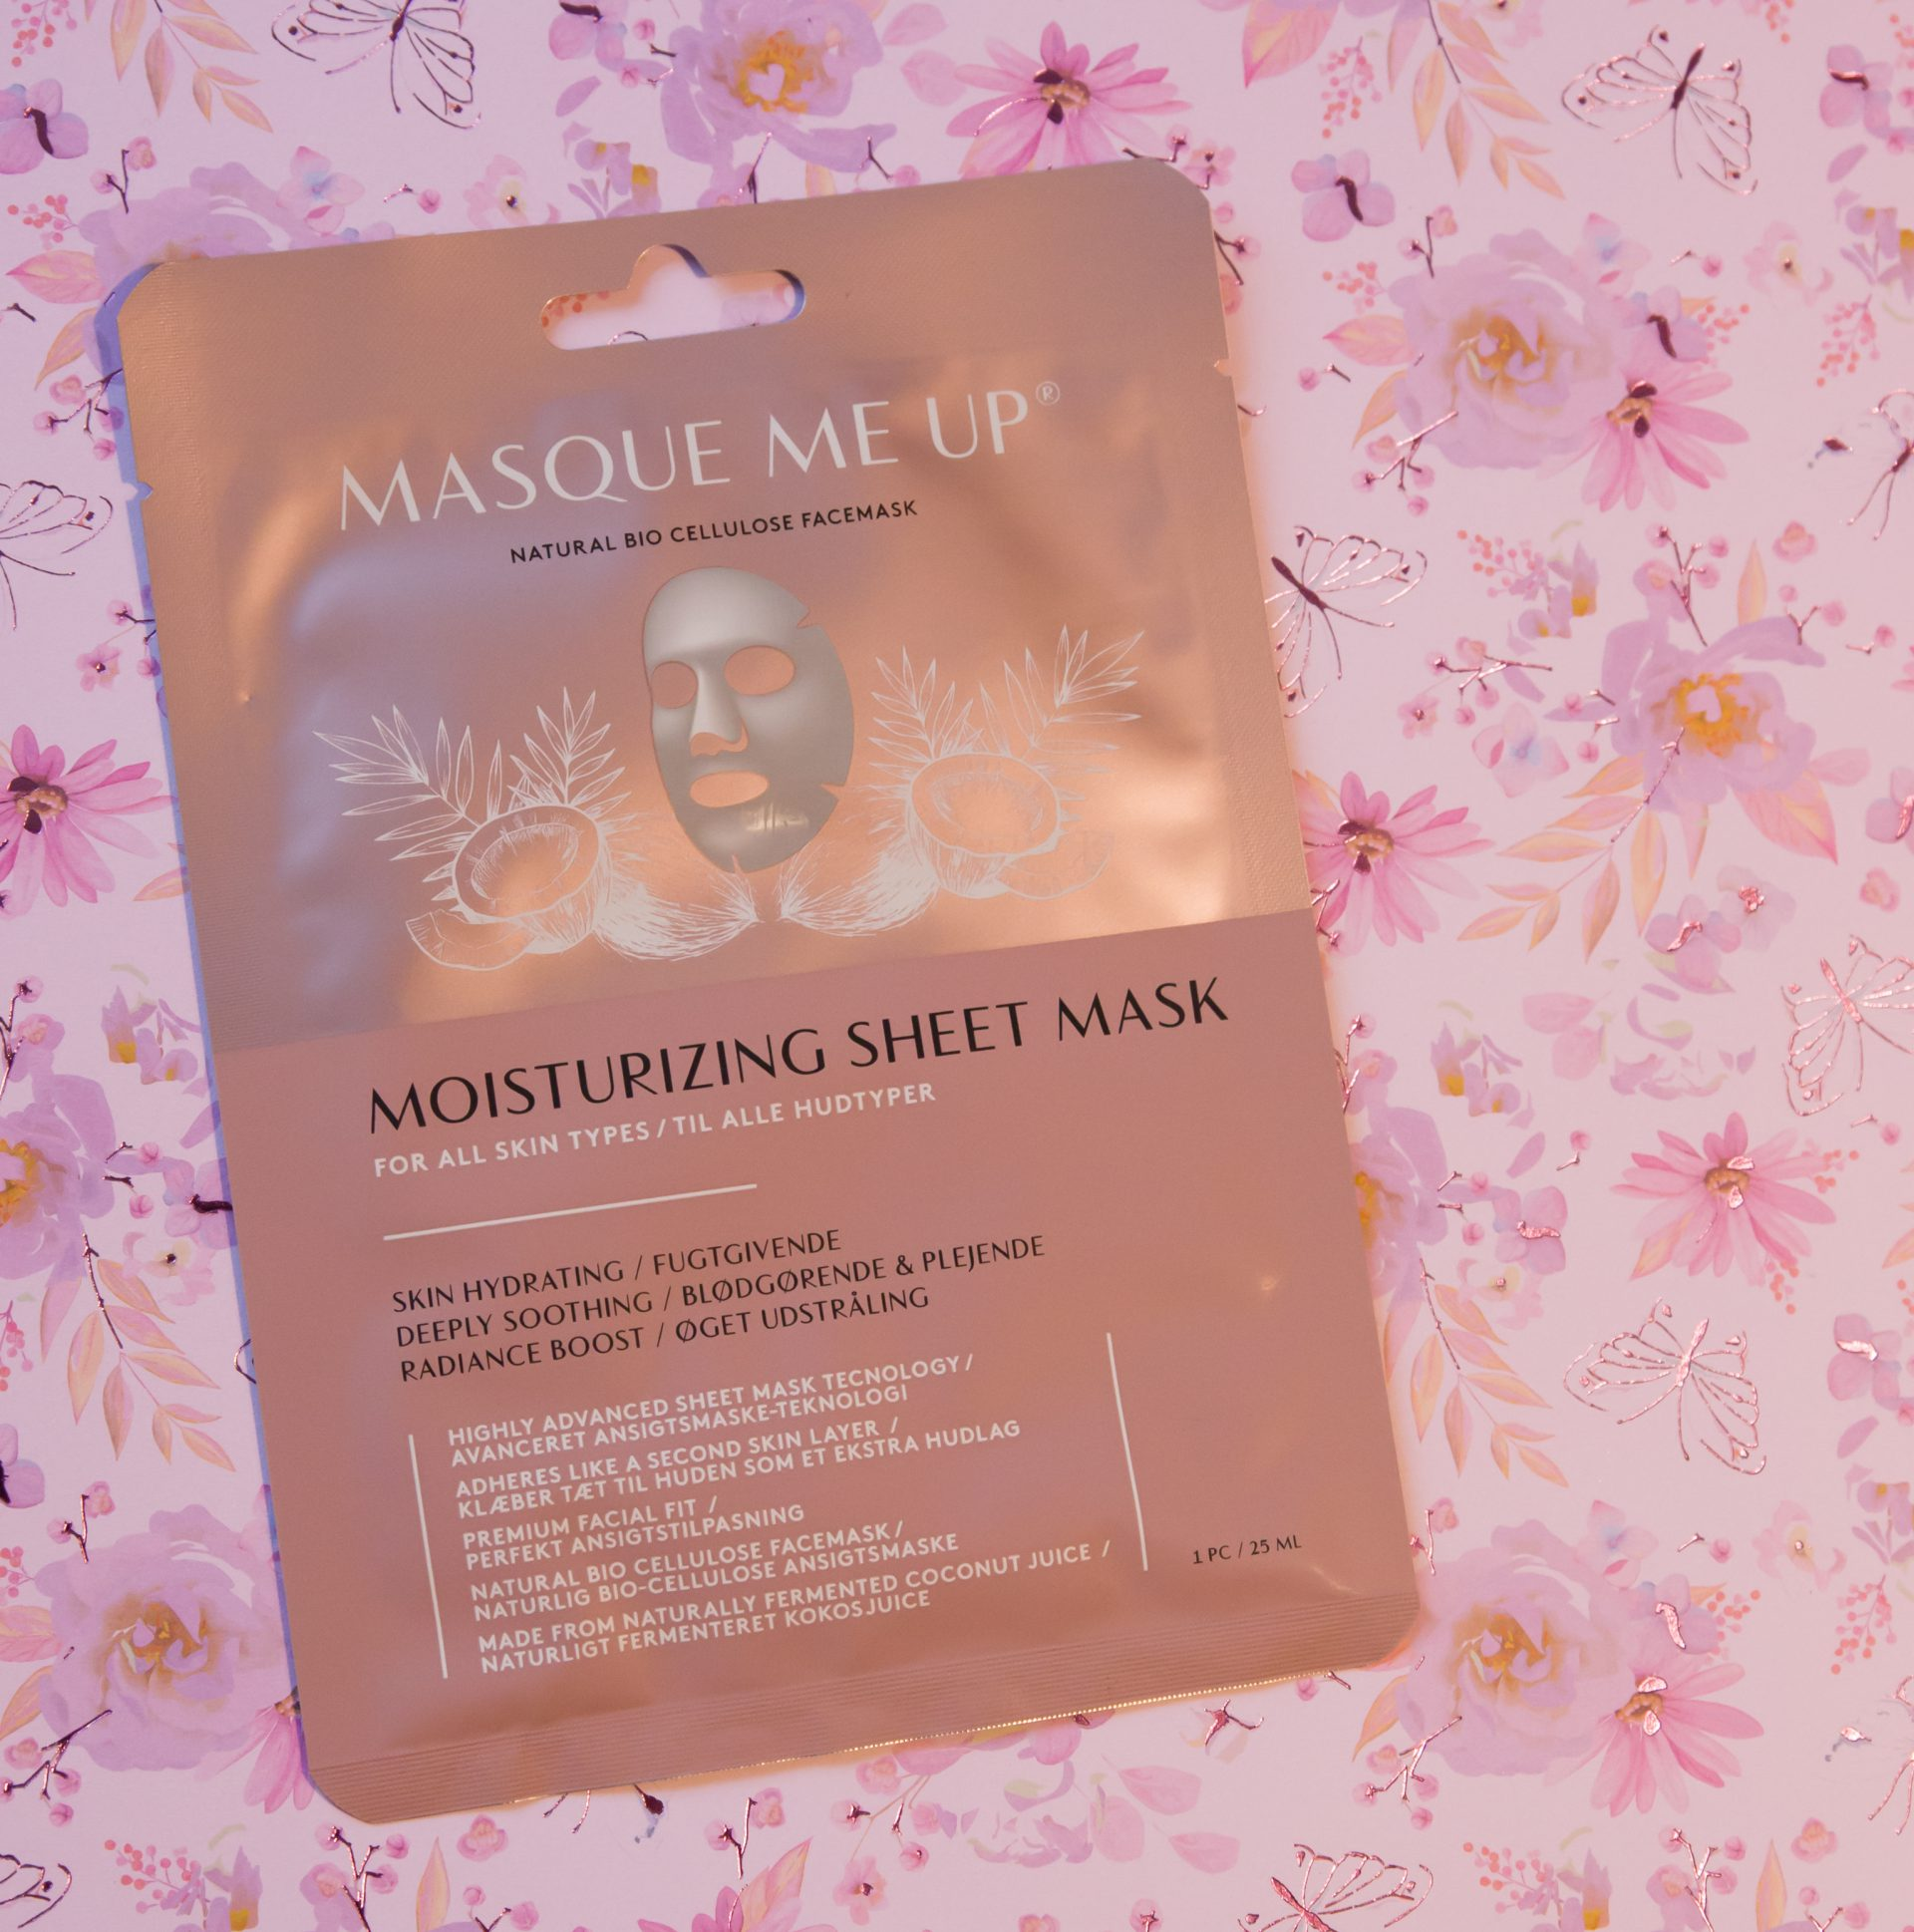 Masque me up Sheet mask unboxing Goodiebox oktober